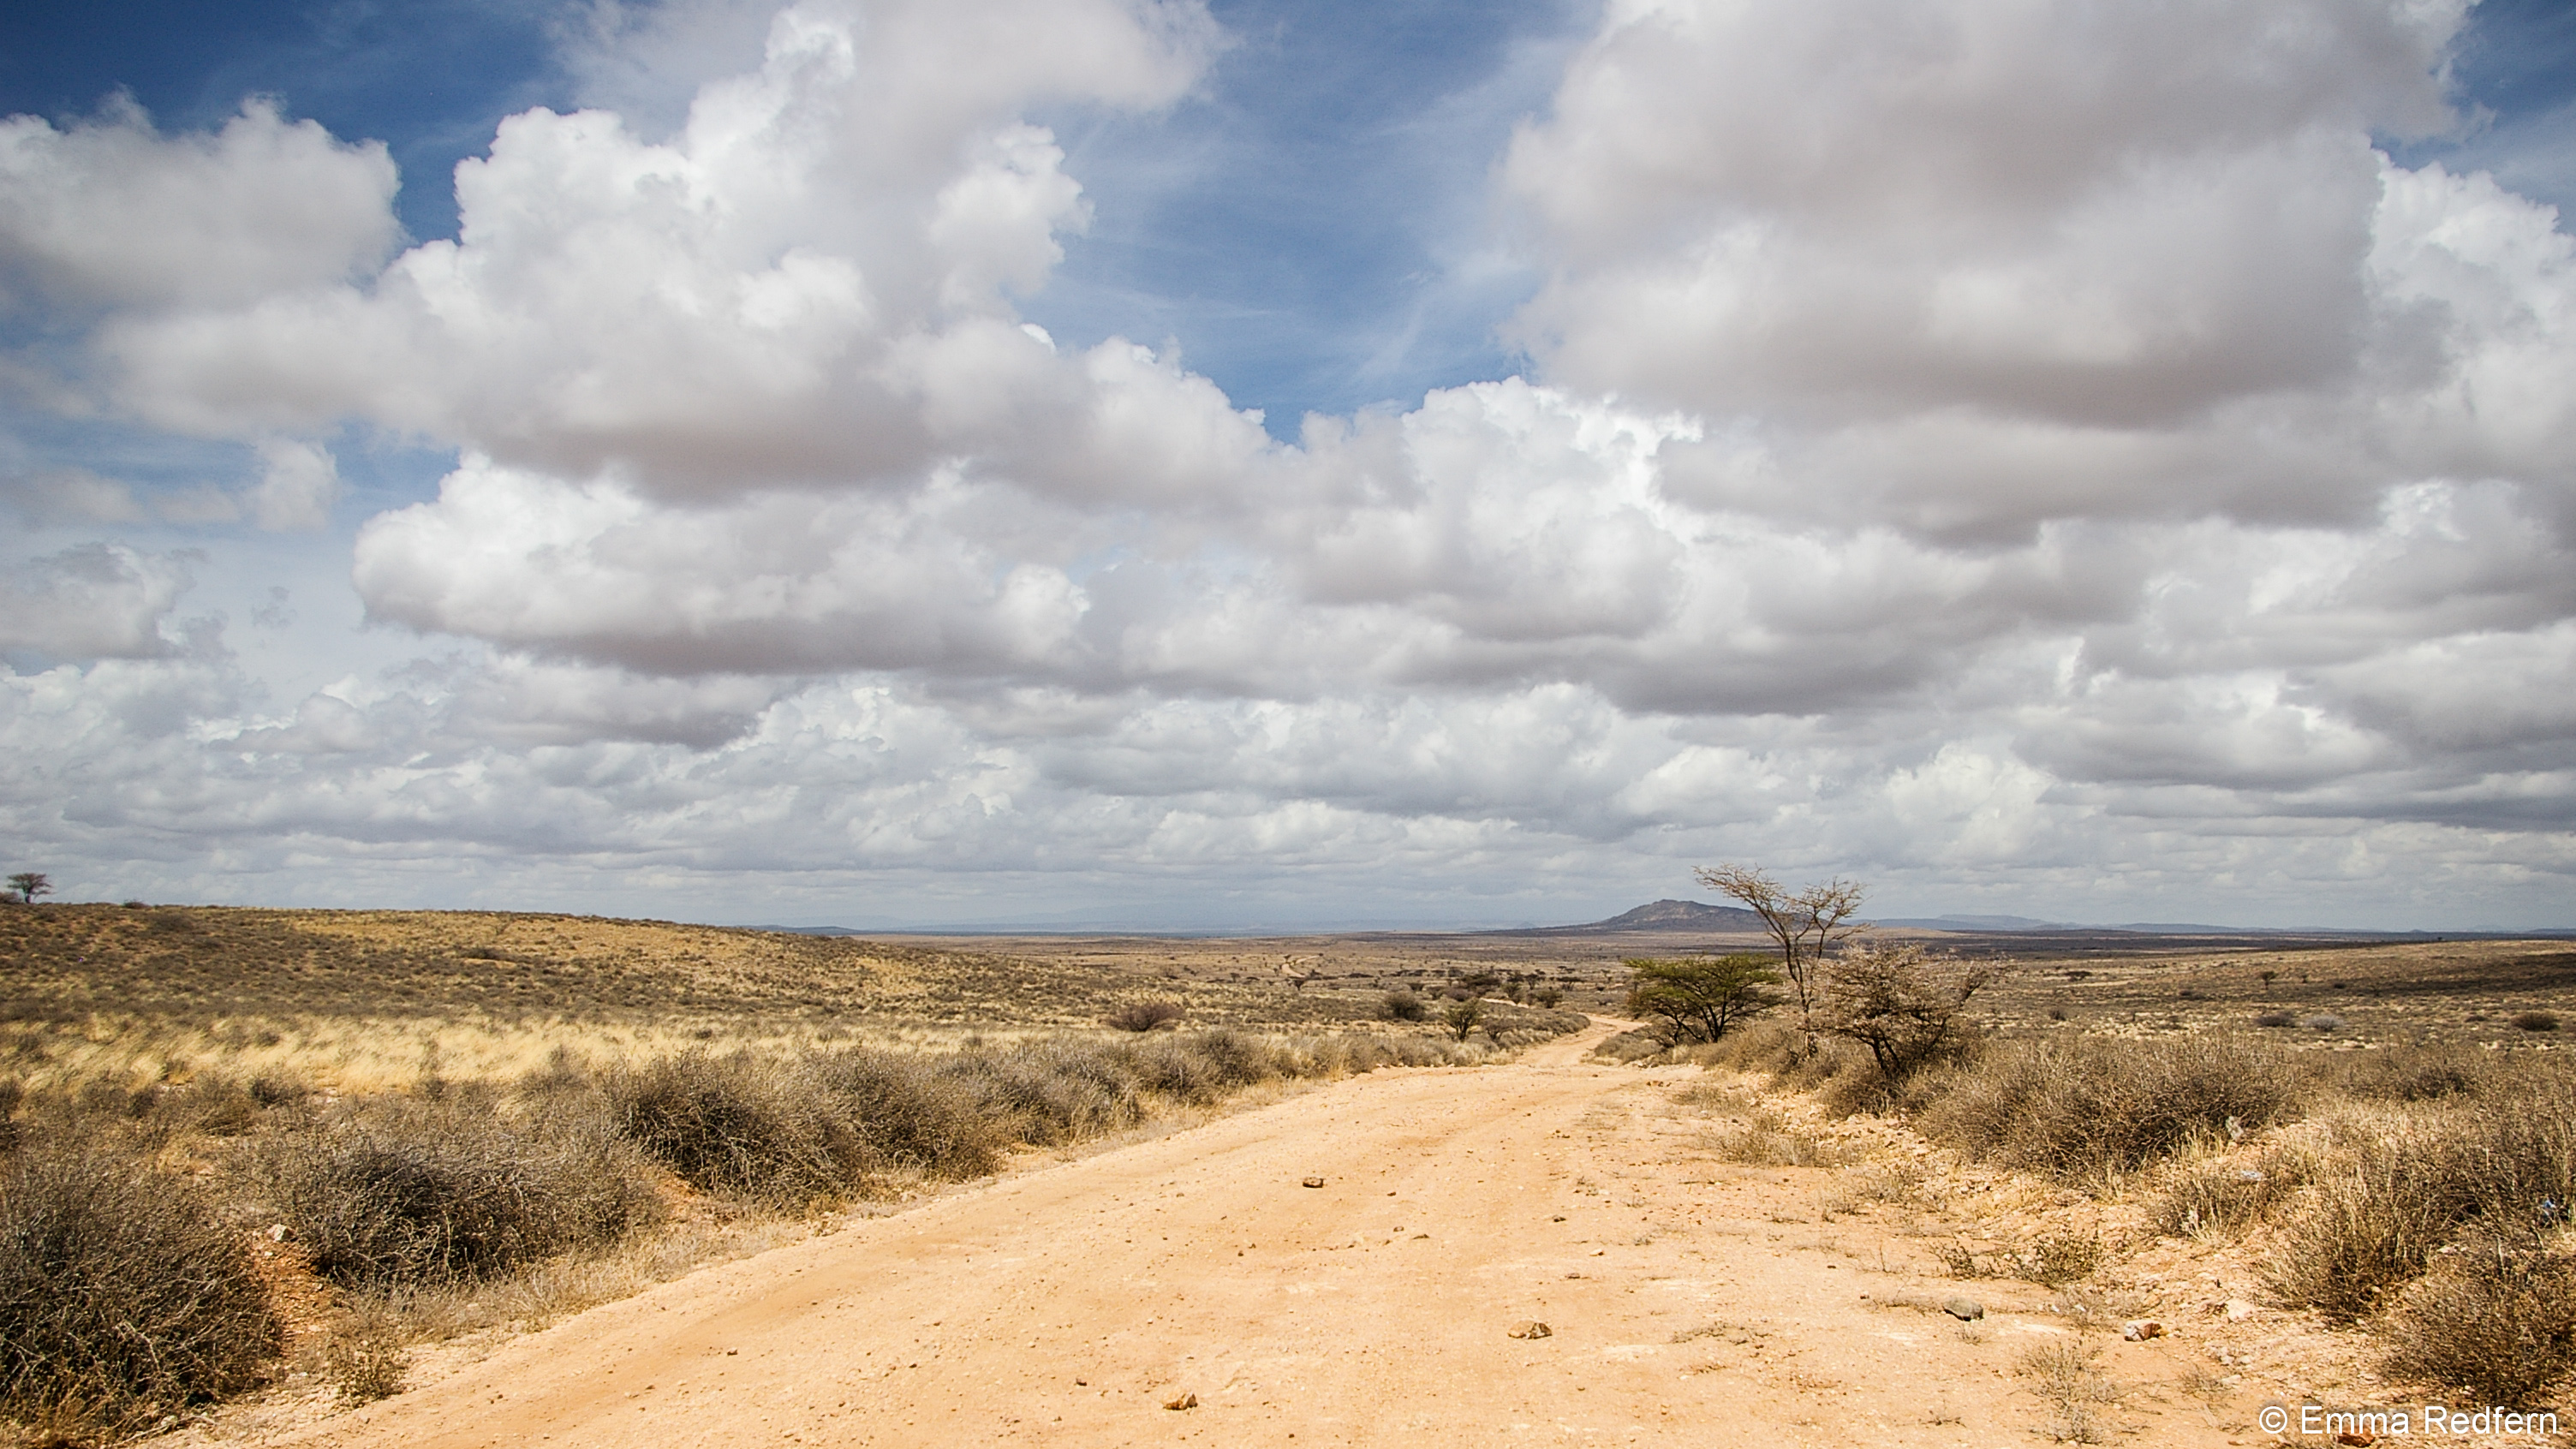 The road from Maralal to Baragoi